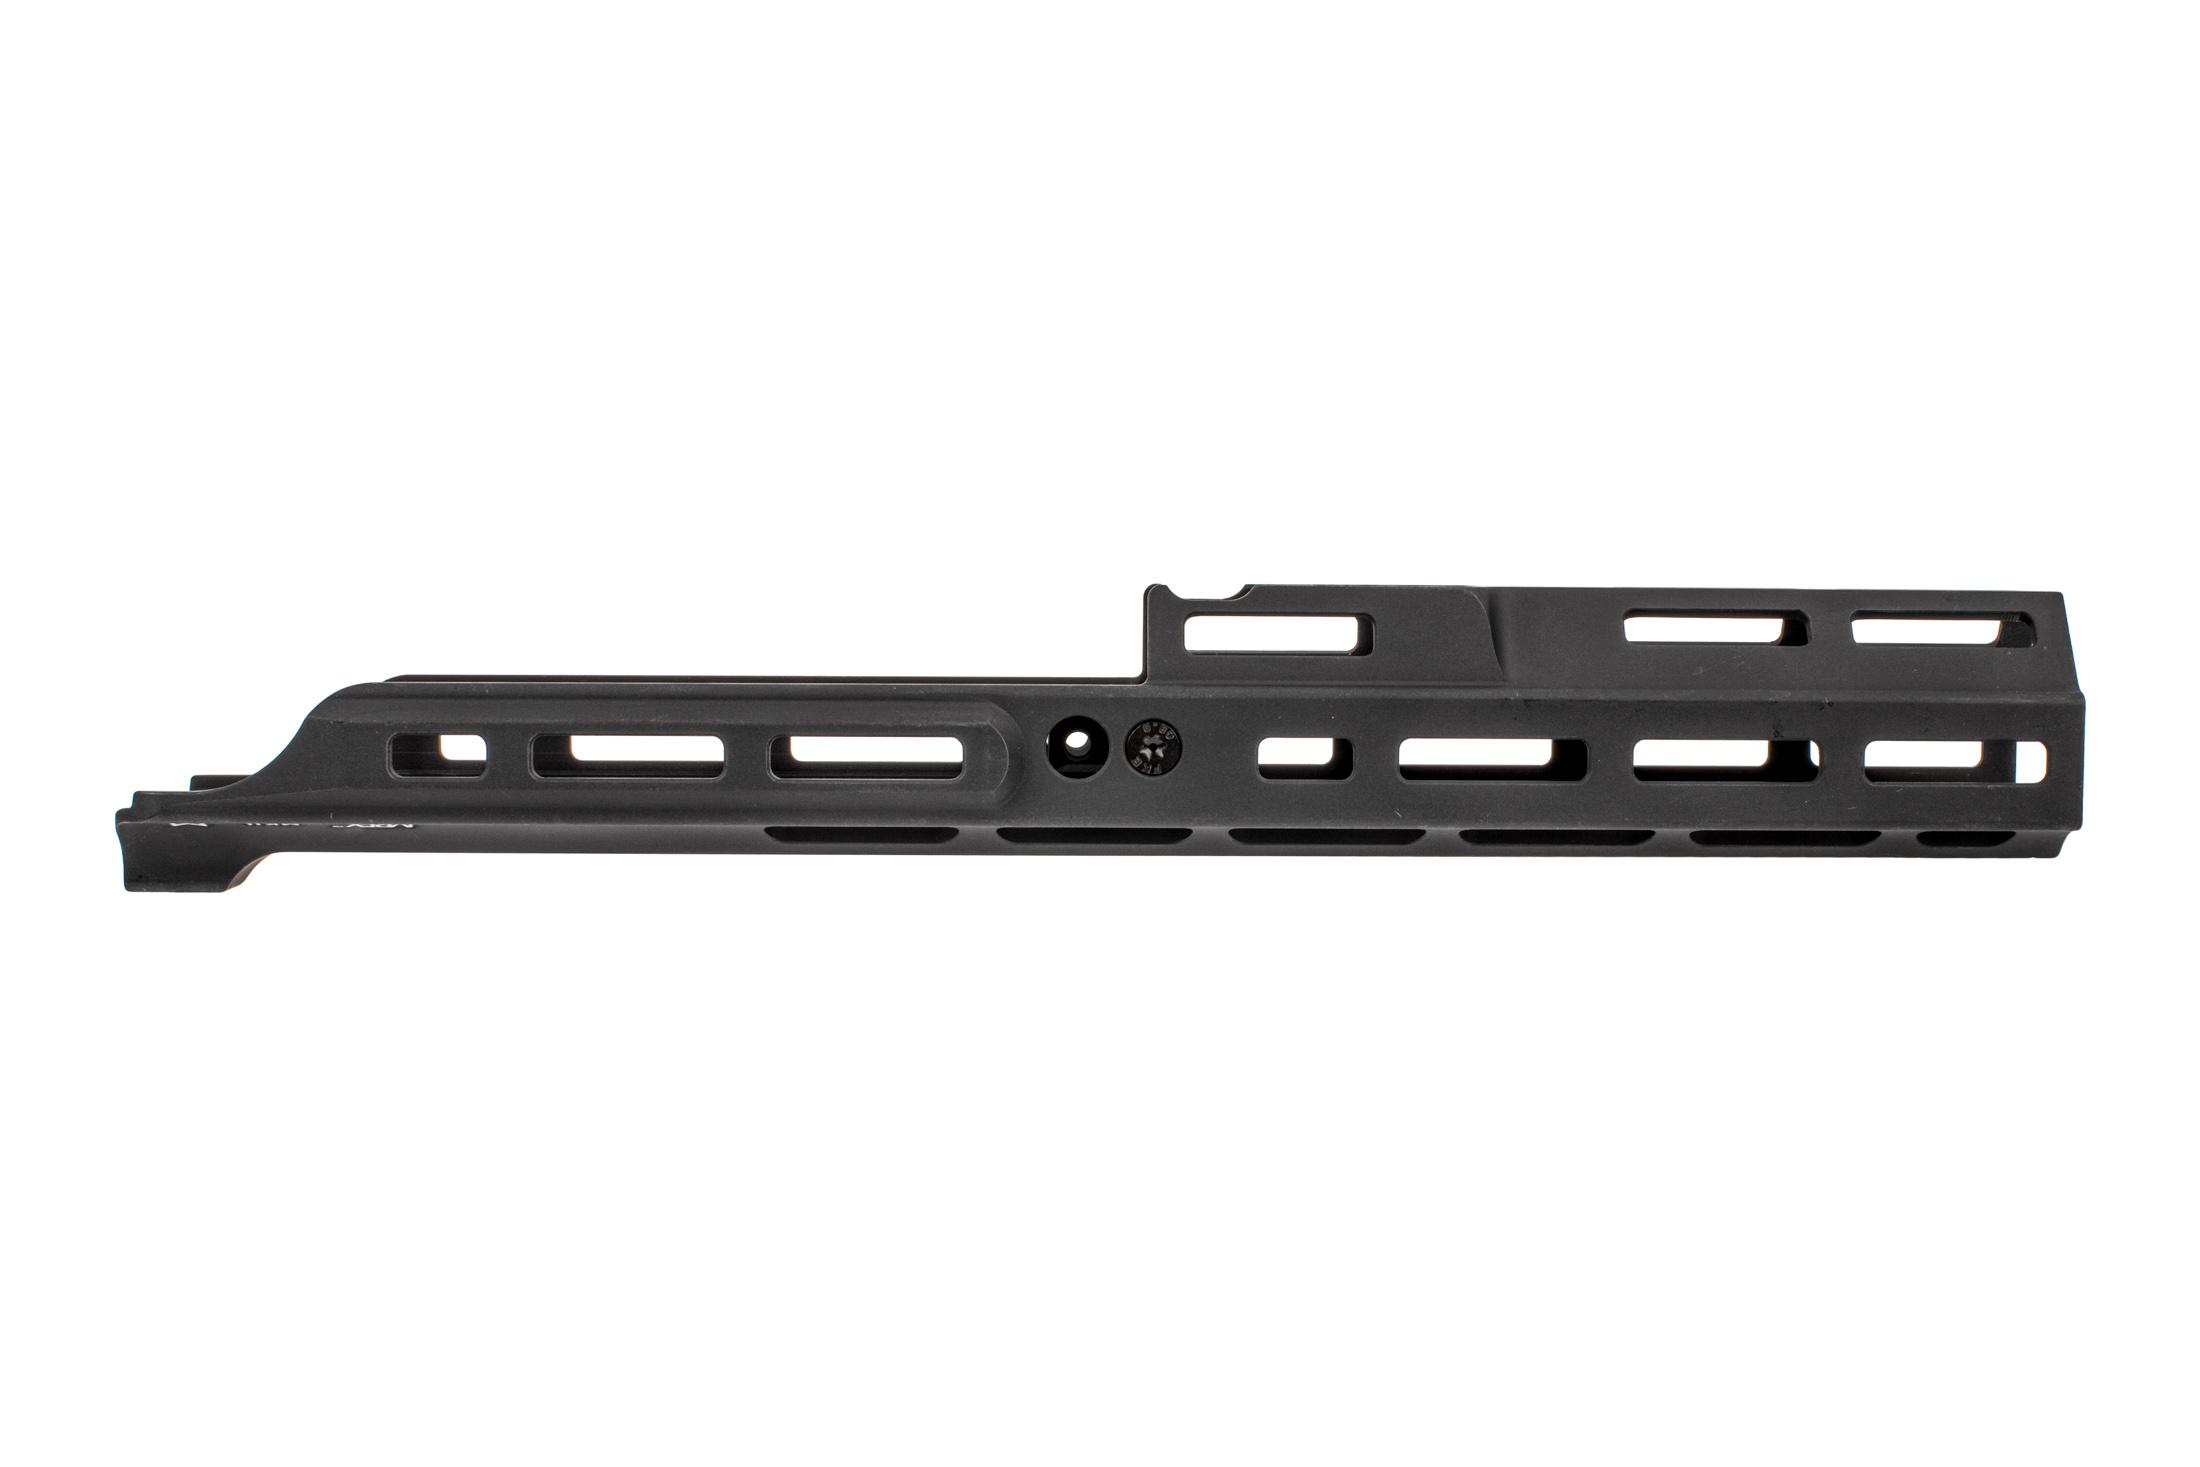 KDG 6.5 MREX MK2 receiver extension fits SCAR rifles with M-LOK slots. Black anodized finish.